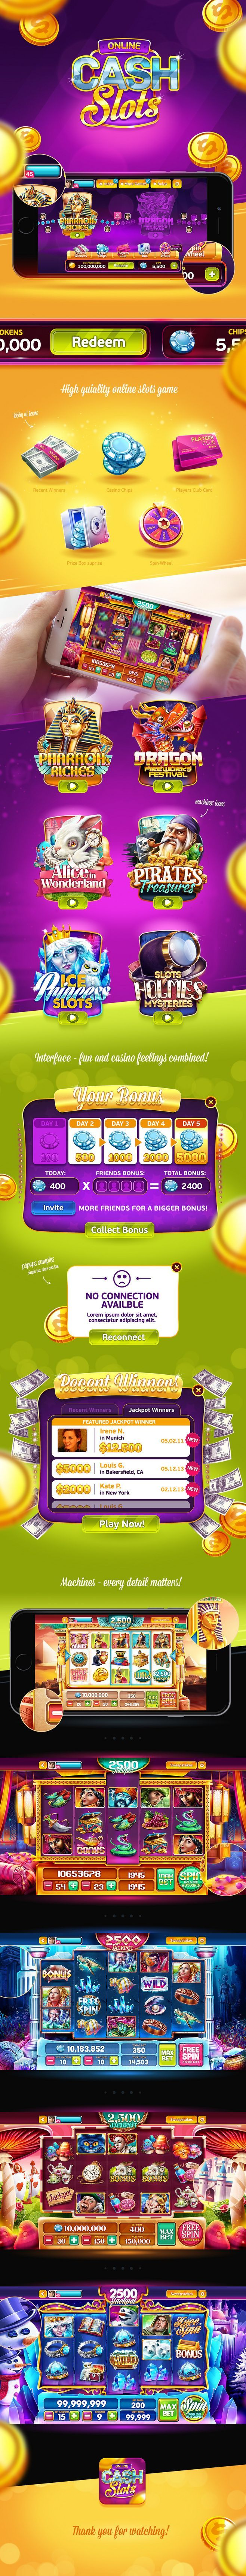 Cash Slots | game ui...: